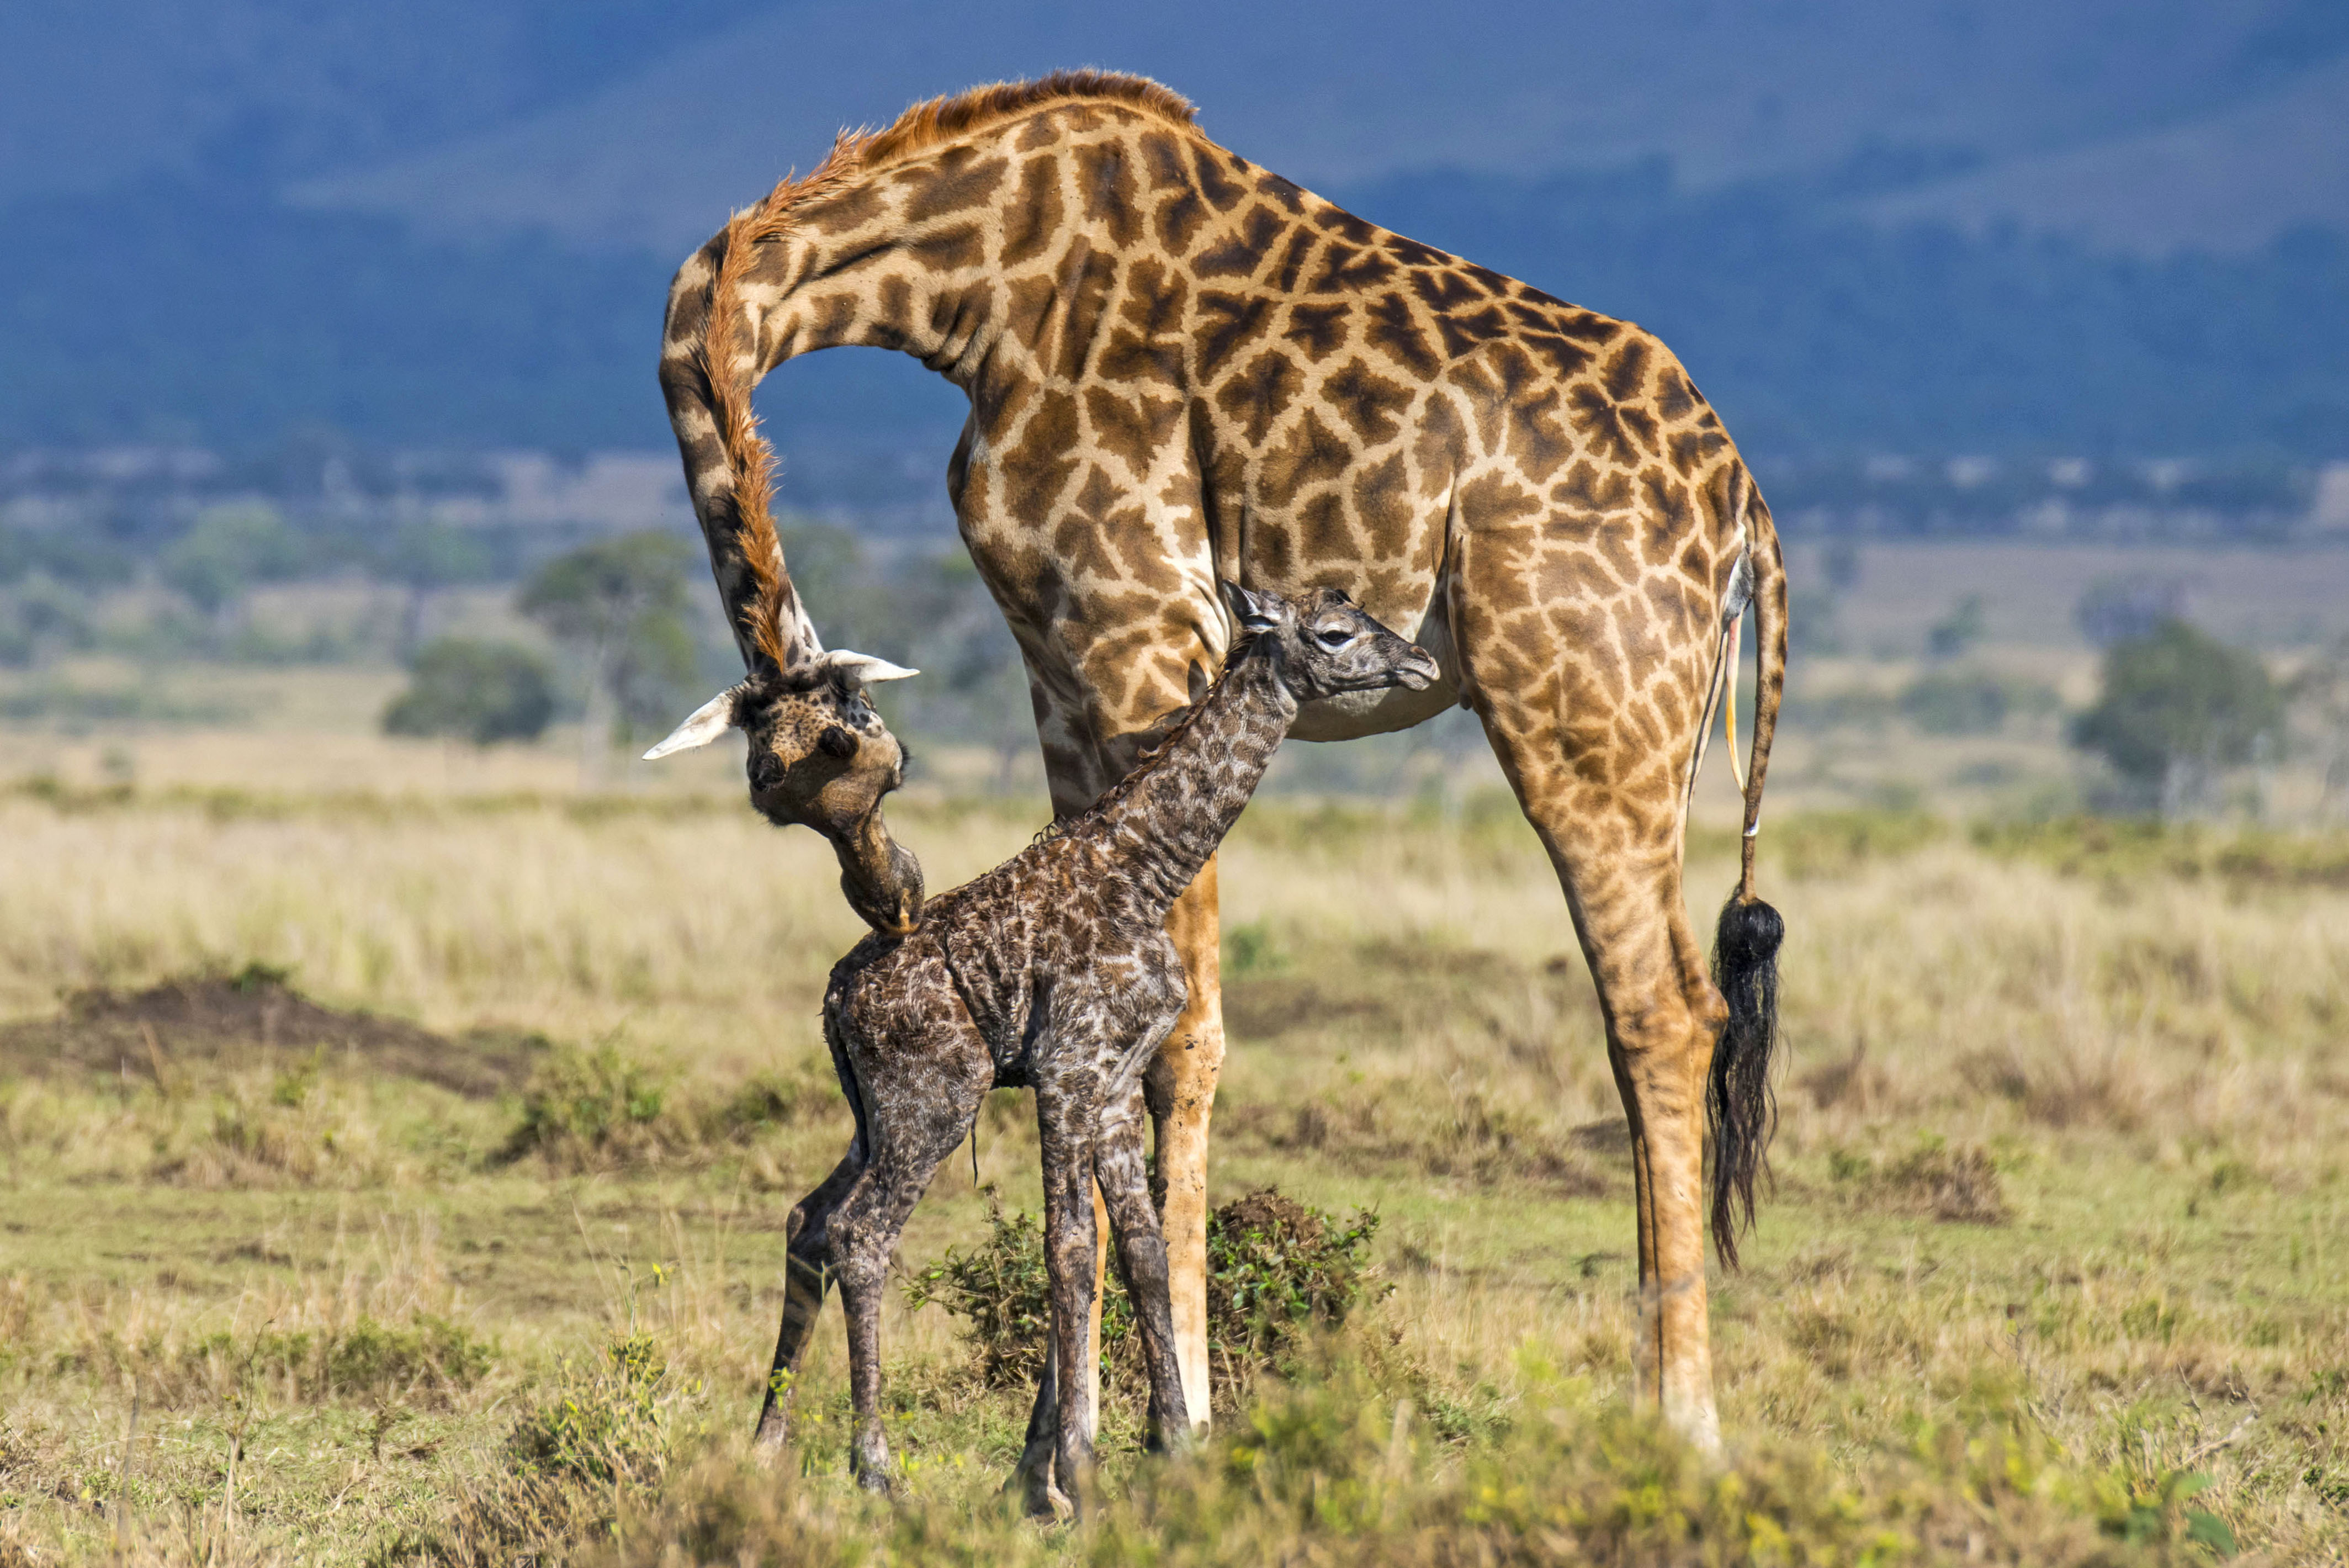 Heartwarming Pictures Show Giraffe Giving Birth To Baby